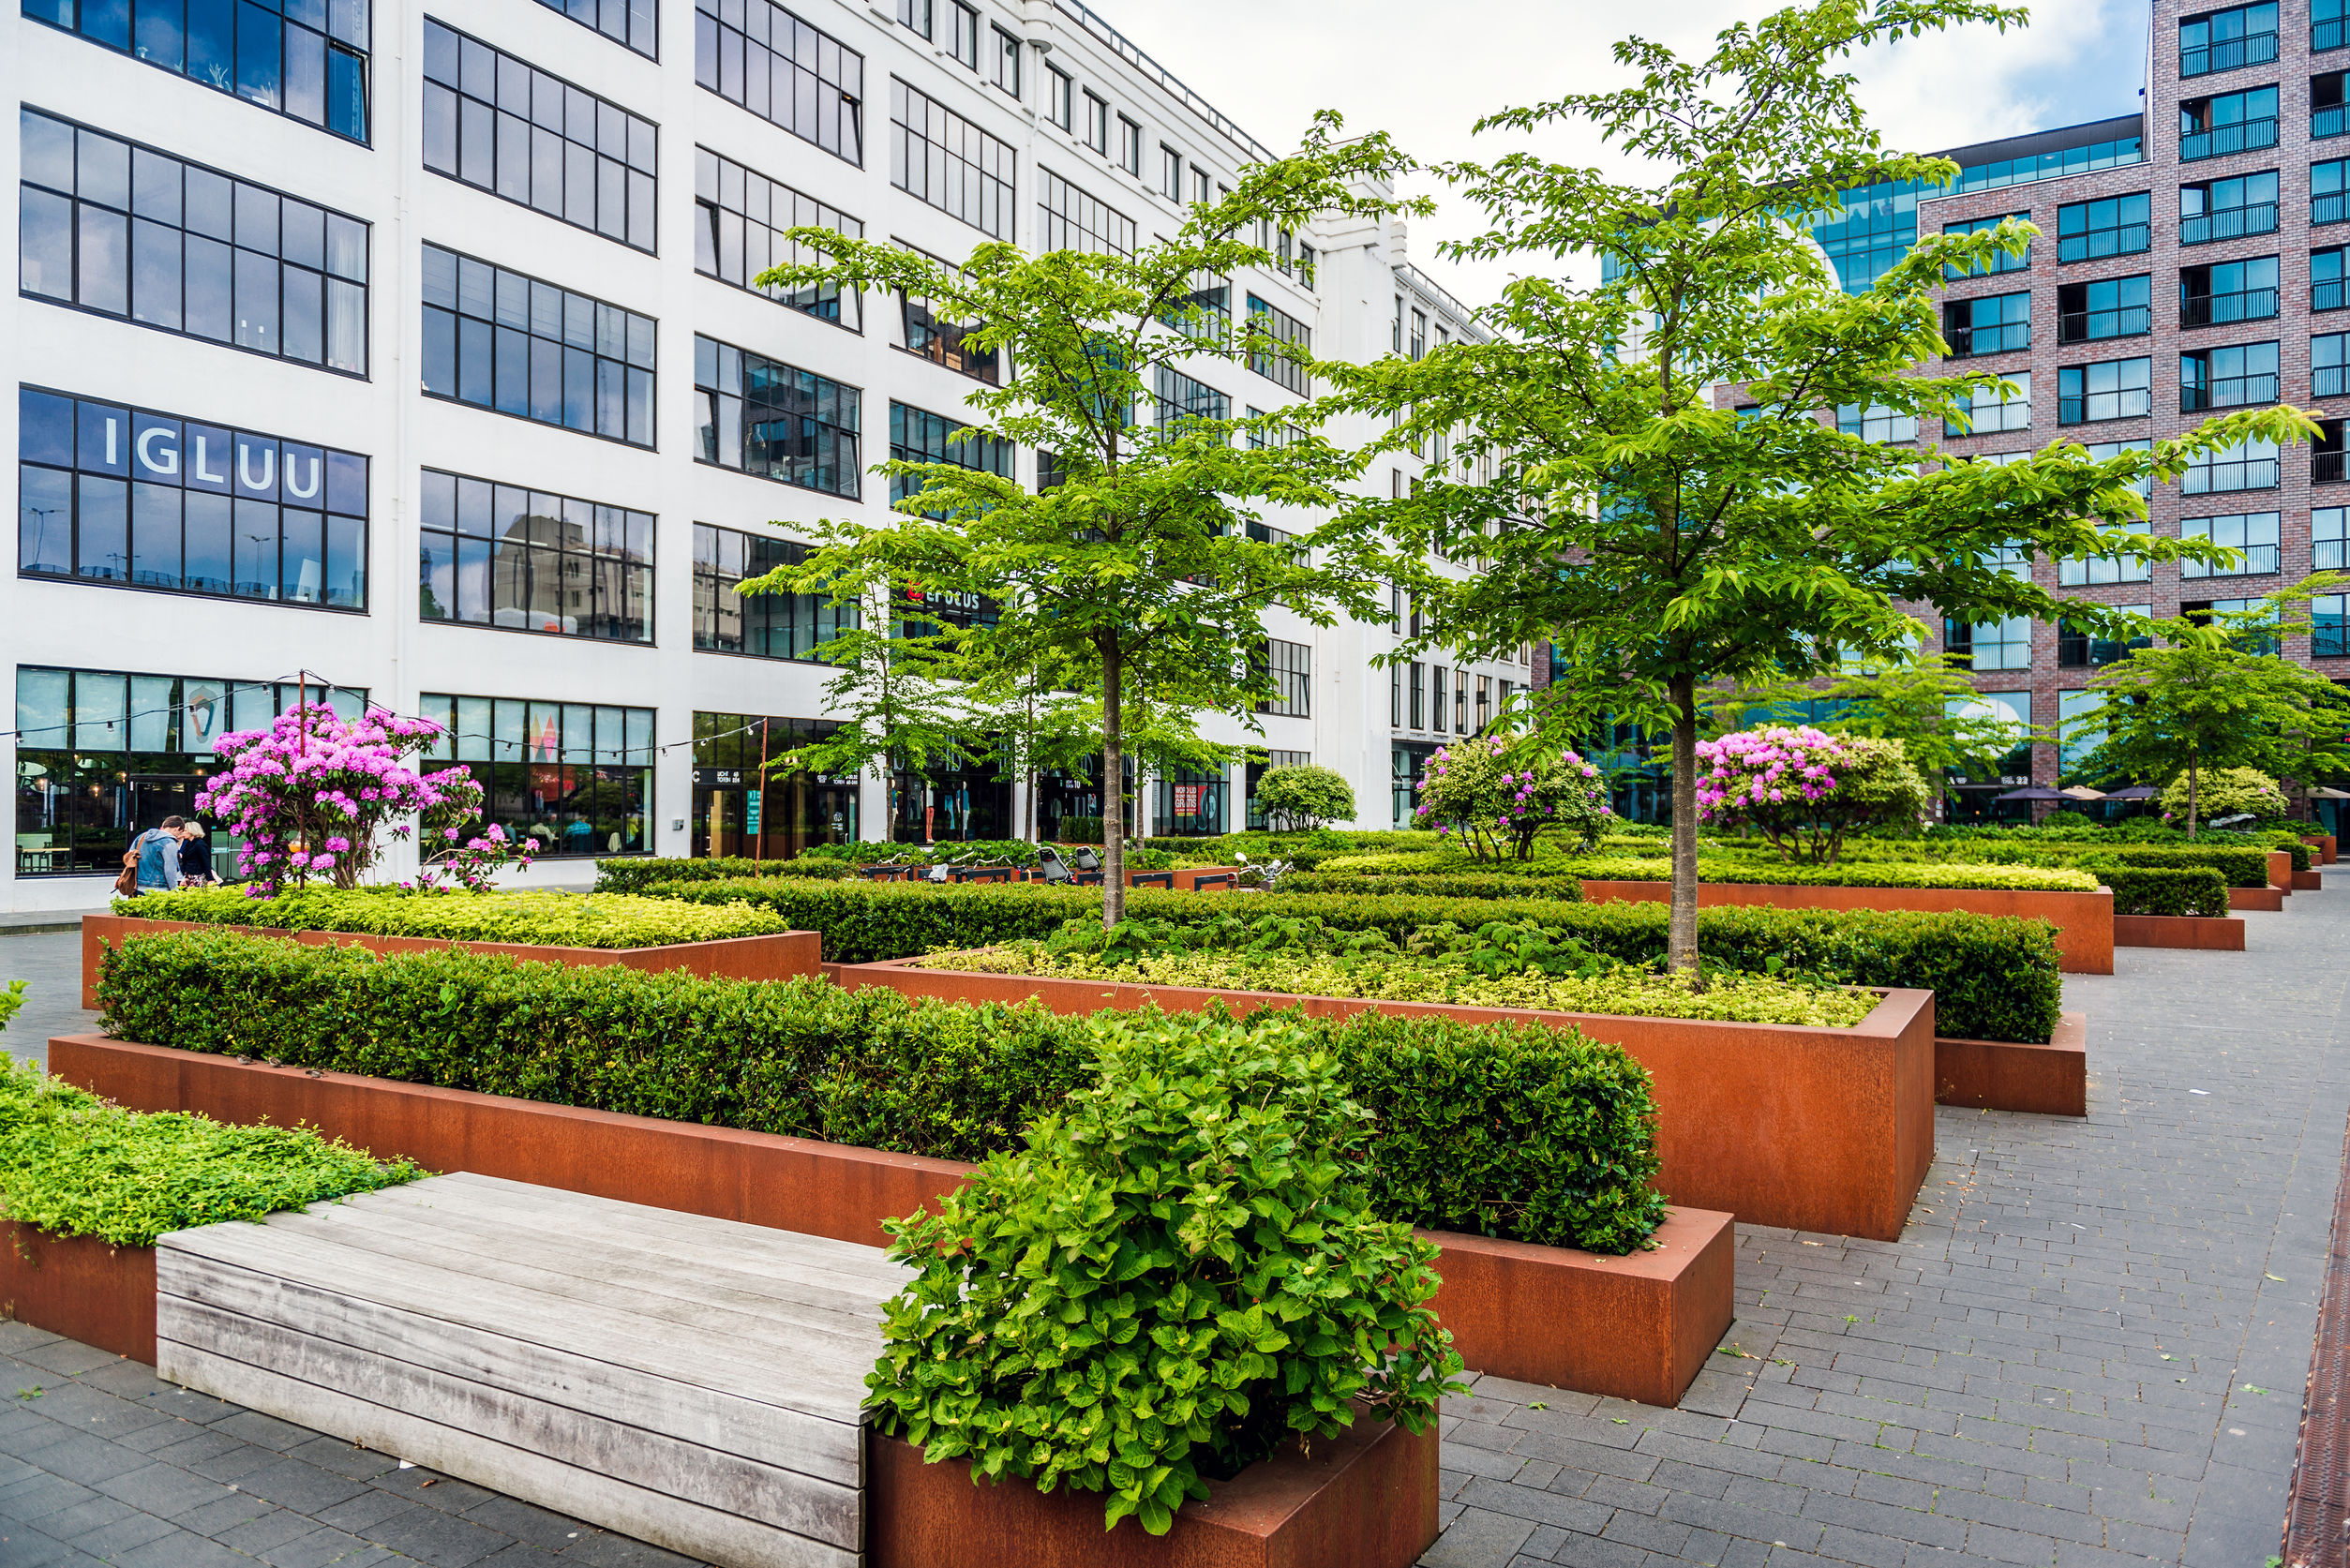 Commercial Landscape for your business | Mansell Landscape Management